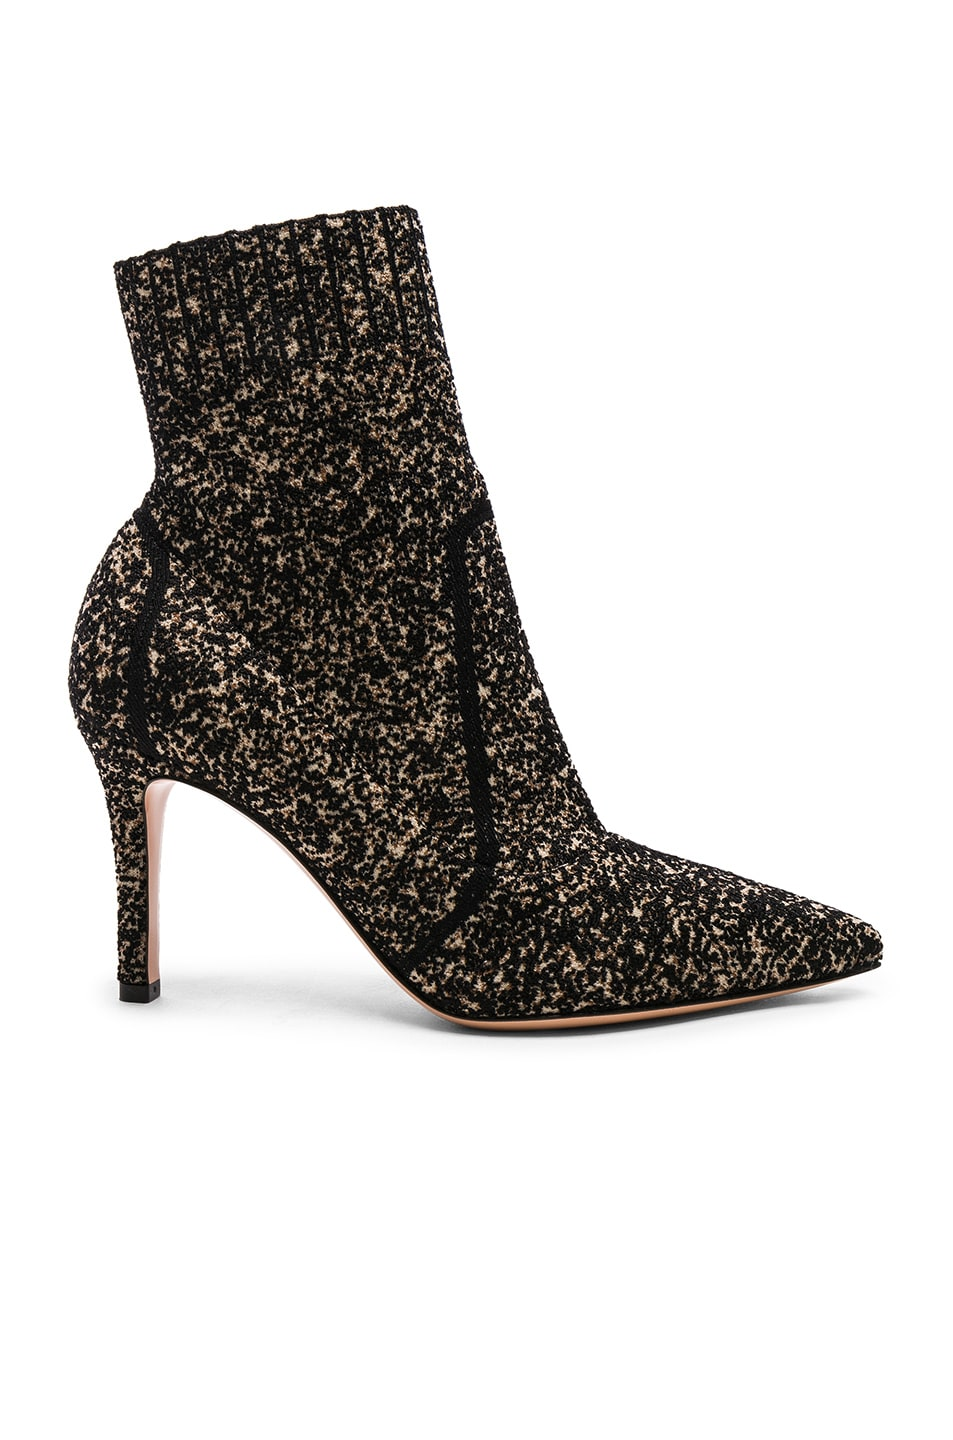 Image 1 of Gianvito Rossi Boucle Knit Katie Ankle Booties in Black & Bisque